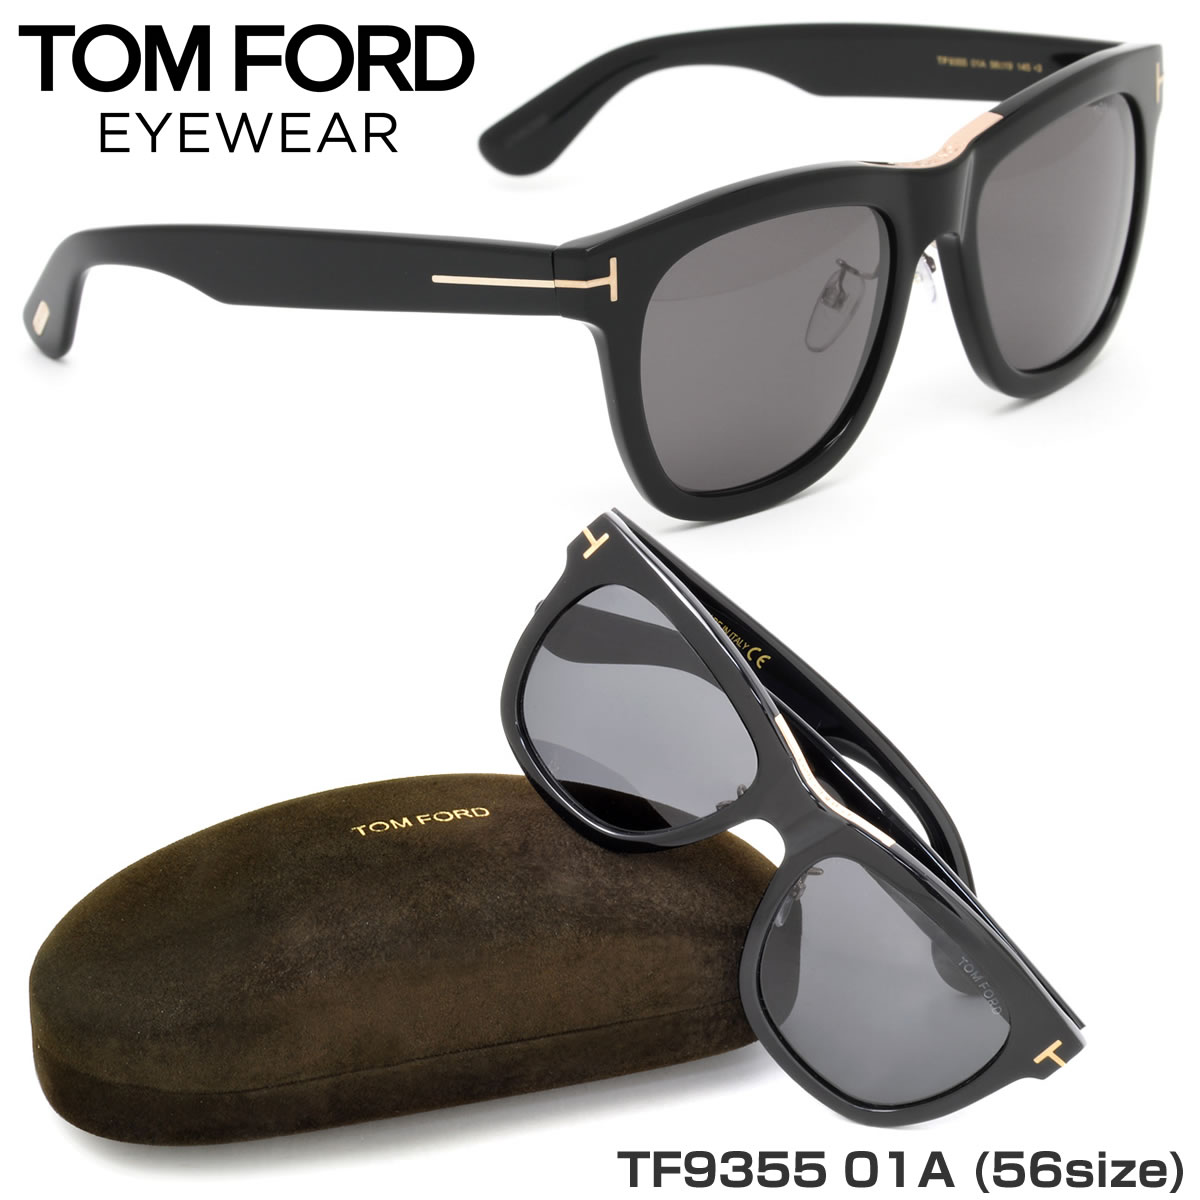 85e0f02213 (TOM FORD) sunglasses TF9355 01A 56 size Wellington TOMFORD Ford FT9355 s  men s women s